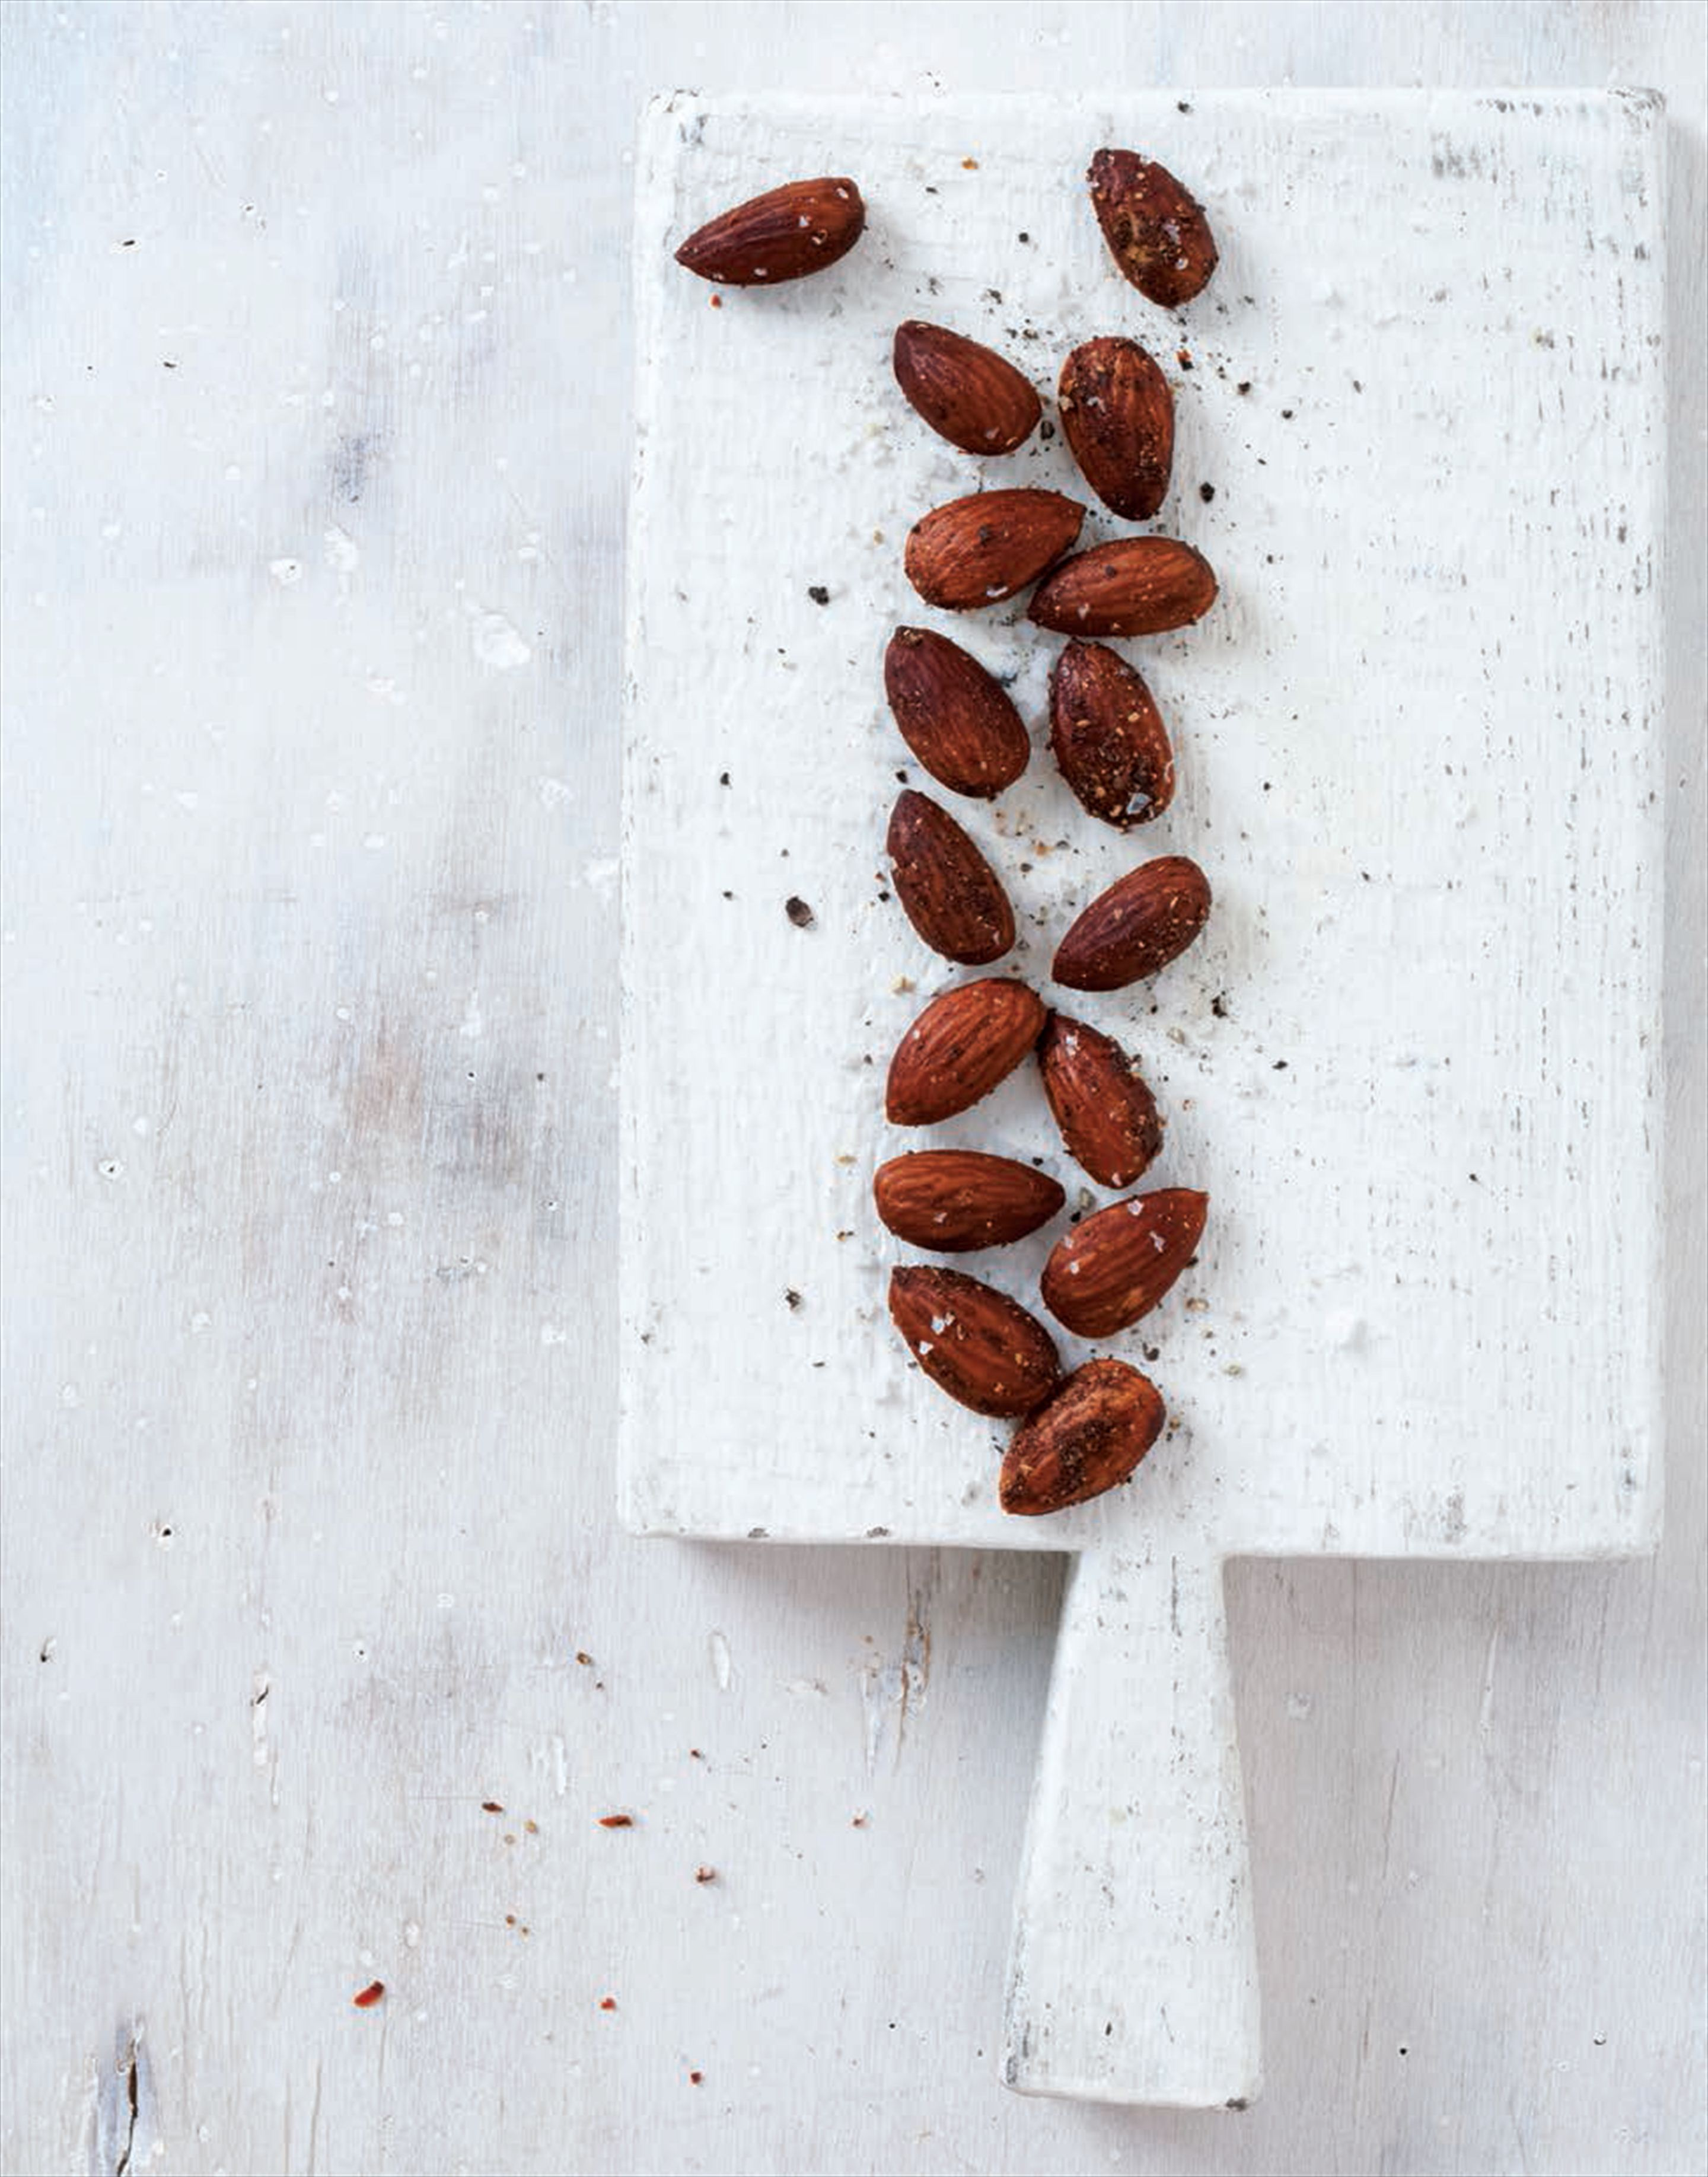 Roasted masala almonds